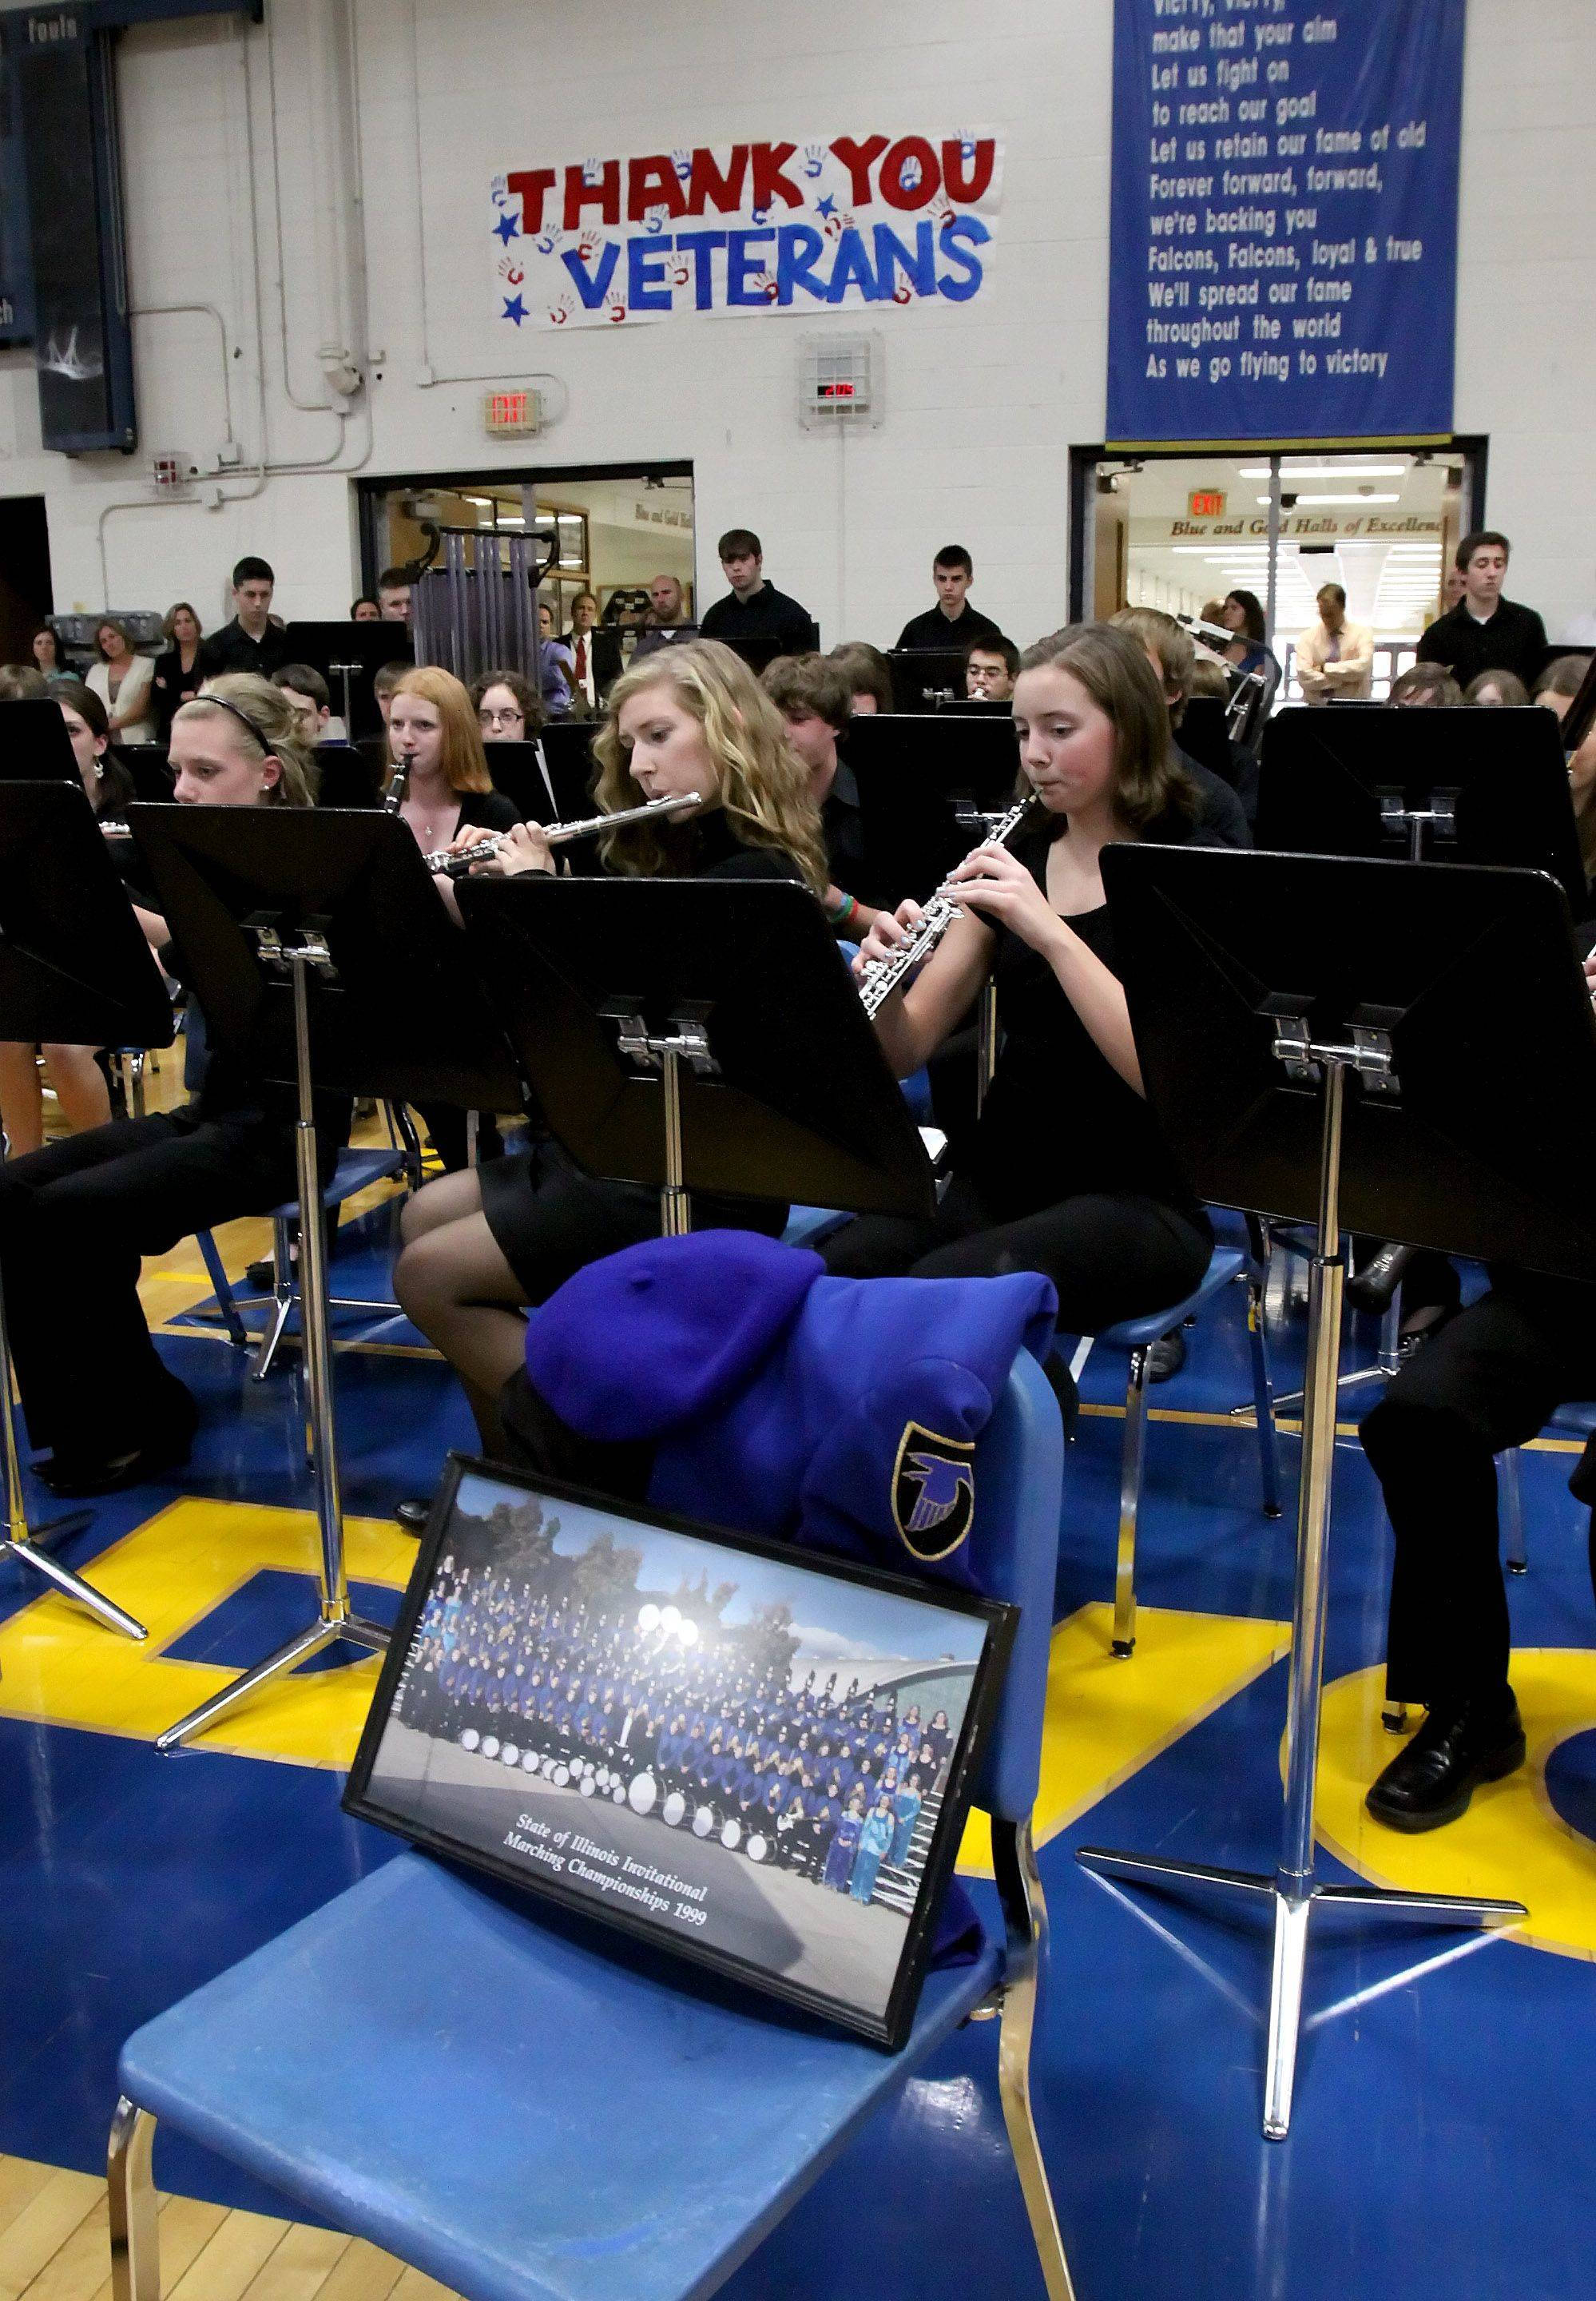 The Wheaton North Wind Ensemble performs at a Veterans Day event honoring Medal of Honor recipient Army Staff Sgt. Robert Miller at Wheaton North High School on Thursday. Miller was a member of the band when he was a student at North.